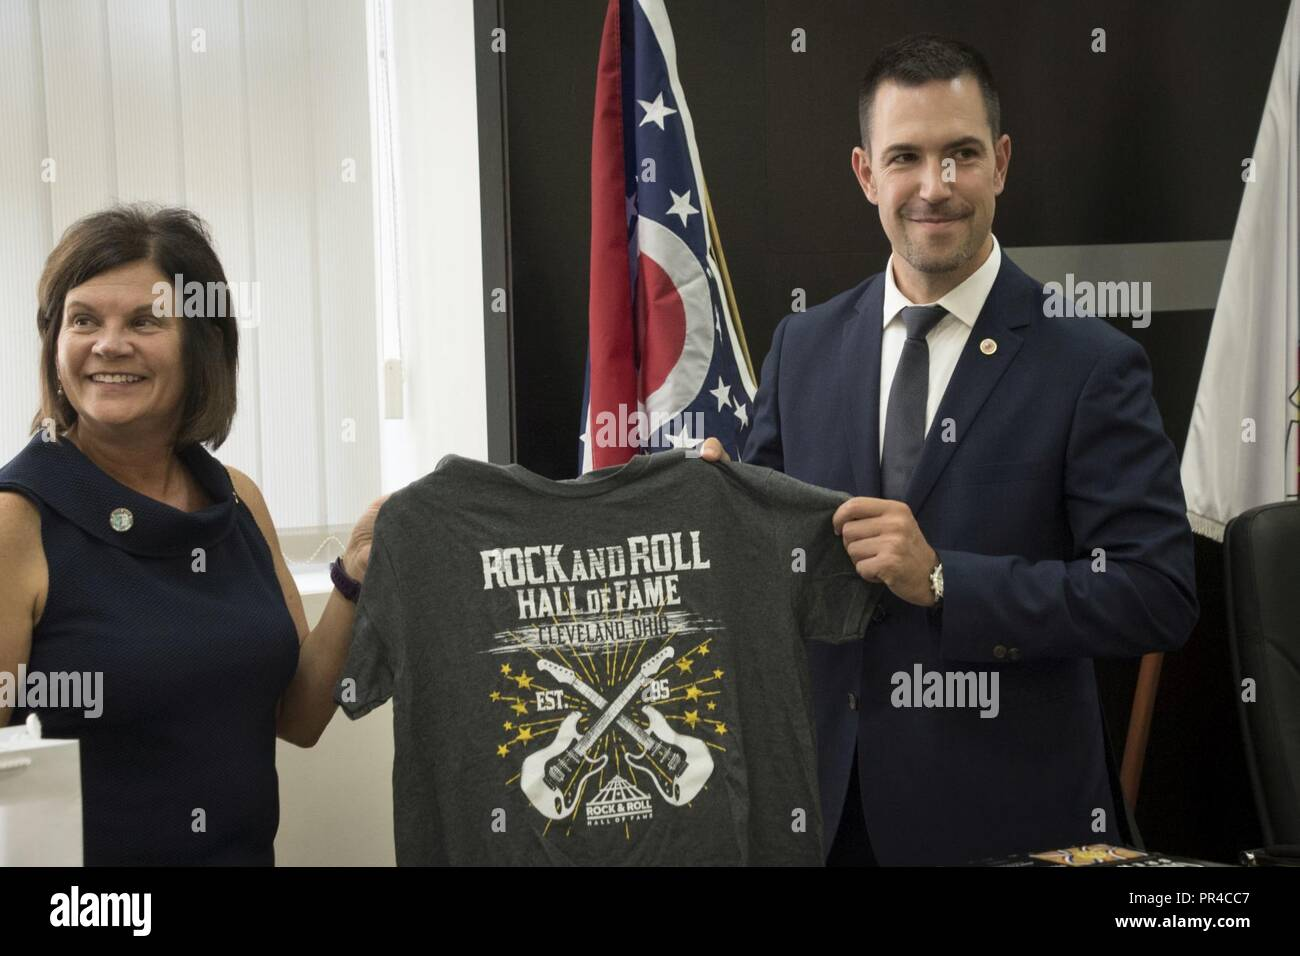 South Euclid, Ohio Mayor Georgine Welo (left) presents a Rock and Roll Hall of Fame T-shirt to Kraljevo, Serbia Mayor Predrag Terzić during the signing of a memorandum of understanding between the two newly paired sister cities, Sept. 7, 2018. Kraljevo and South Euclid are becoming partners through Sister Cities International, a sociopolitical extension of the Department of Defense State Partnership Program pairing of Ohio and Serbia. (Ohio National Guard - Stock Image